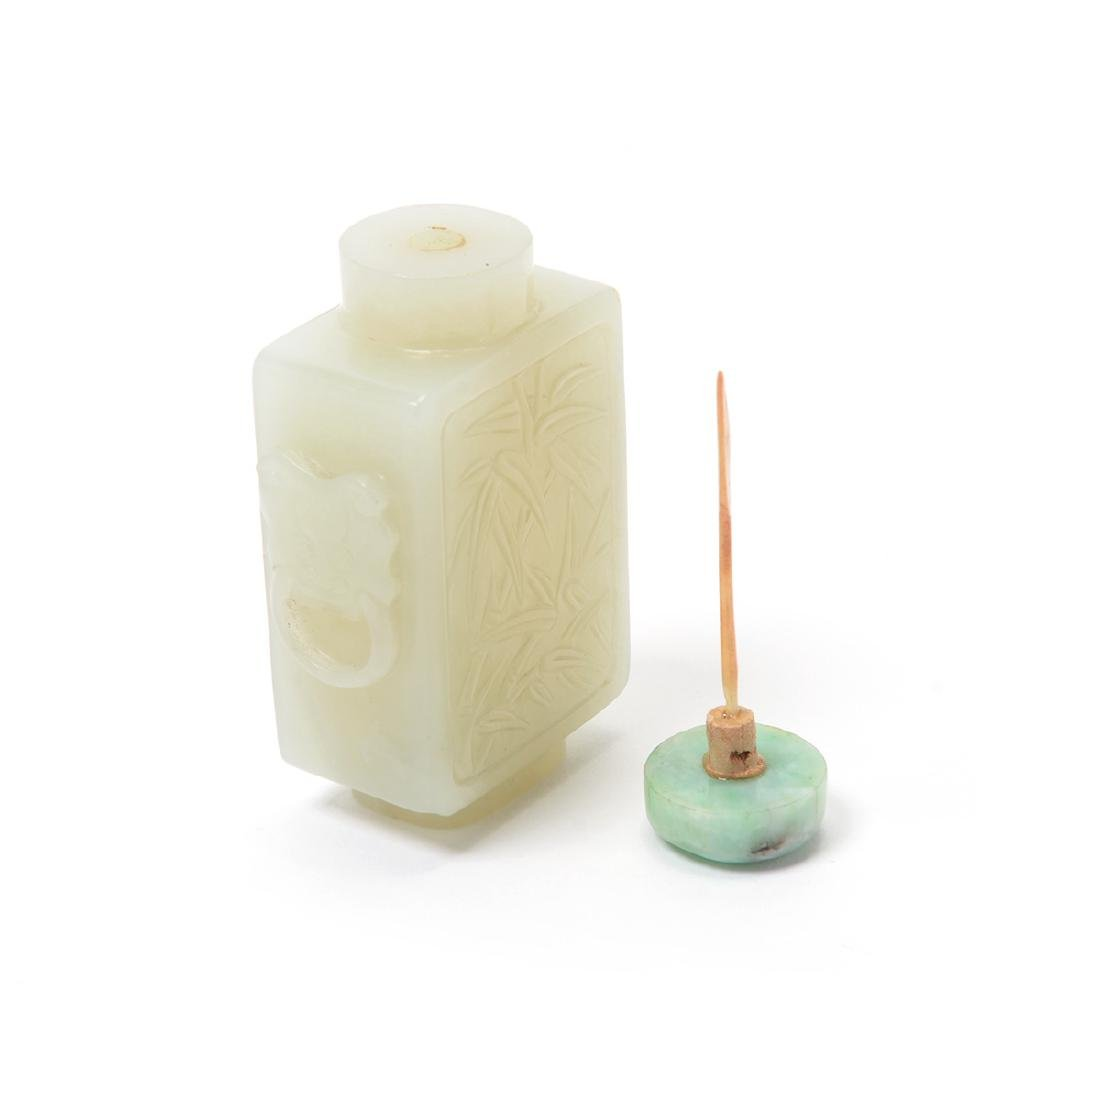 White Jade Snuff Bottle, 18th/19th Century - 3